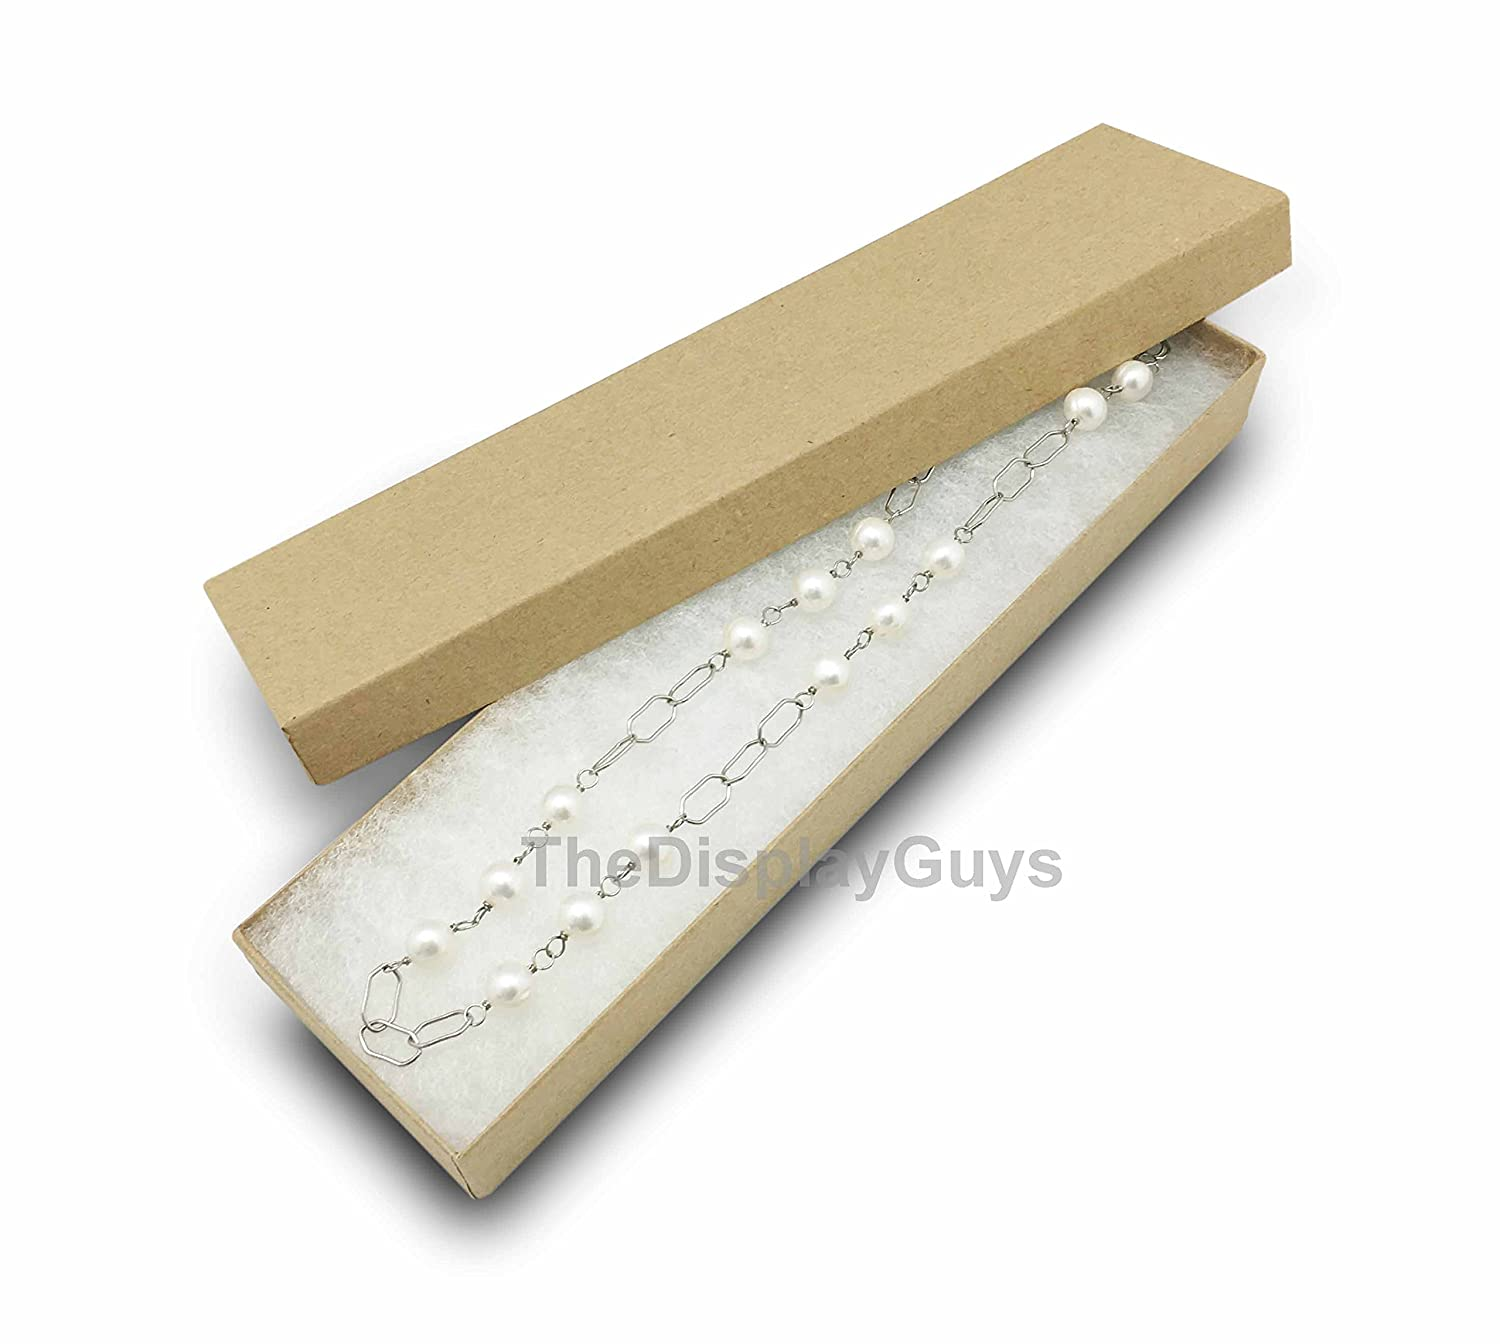 1 7//8x1 1//4x5//8 inches #10 Kraft The Display Guys Pack of 25 Cotton Filled Cardboard Paper Kraft Jewelry Box Gift Case